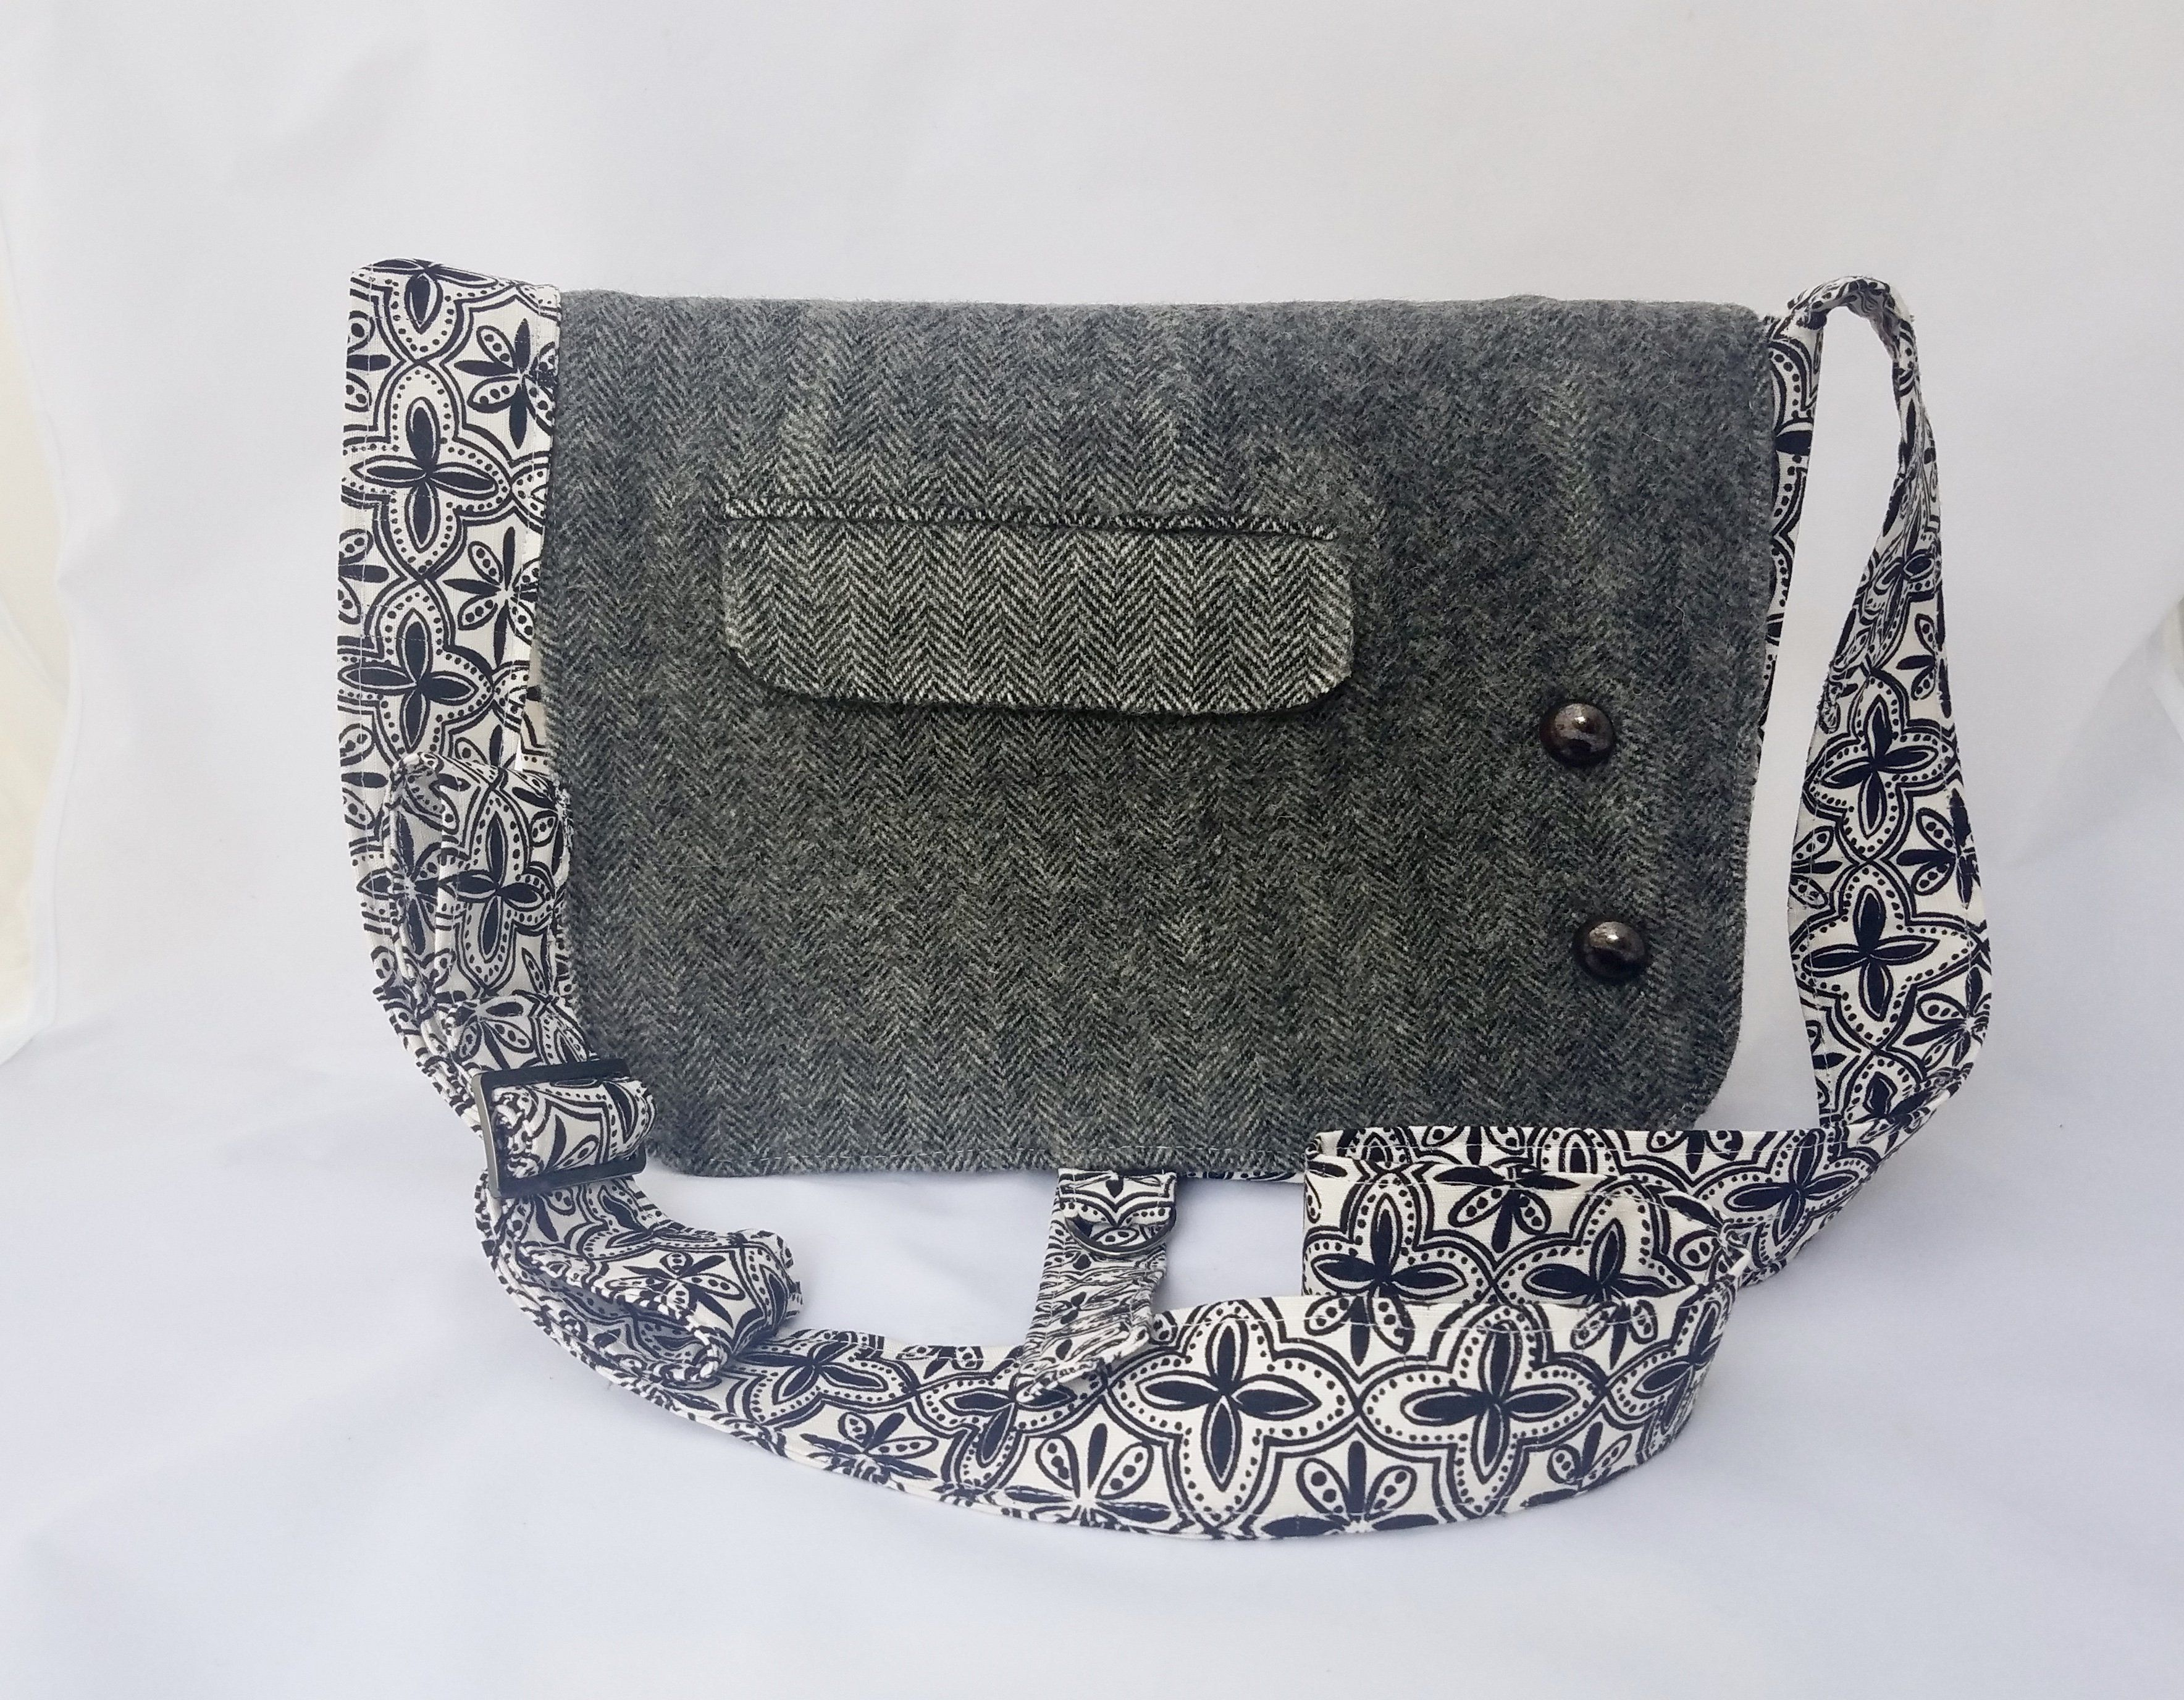 A Study in Black & White + Men's Suit Upcycled Messenger Bag